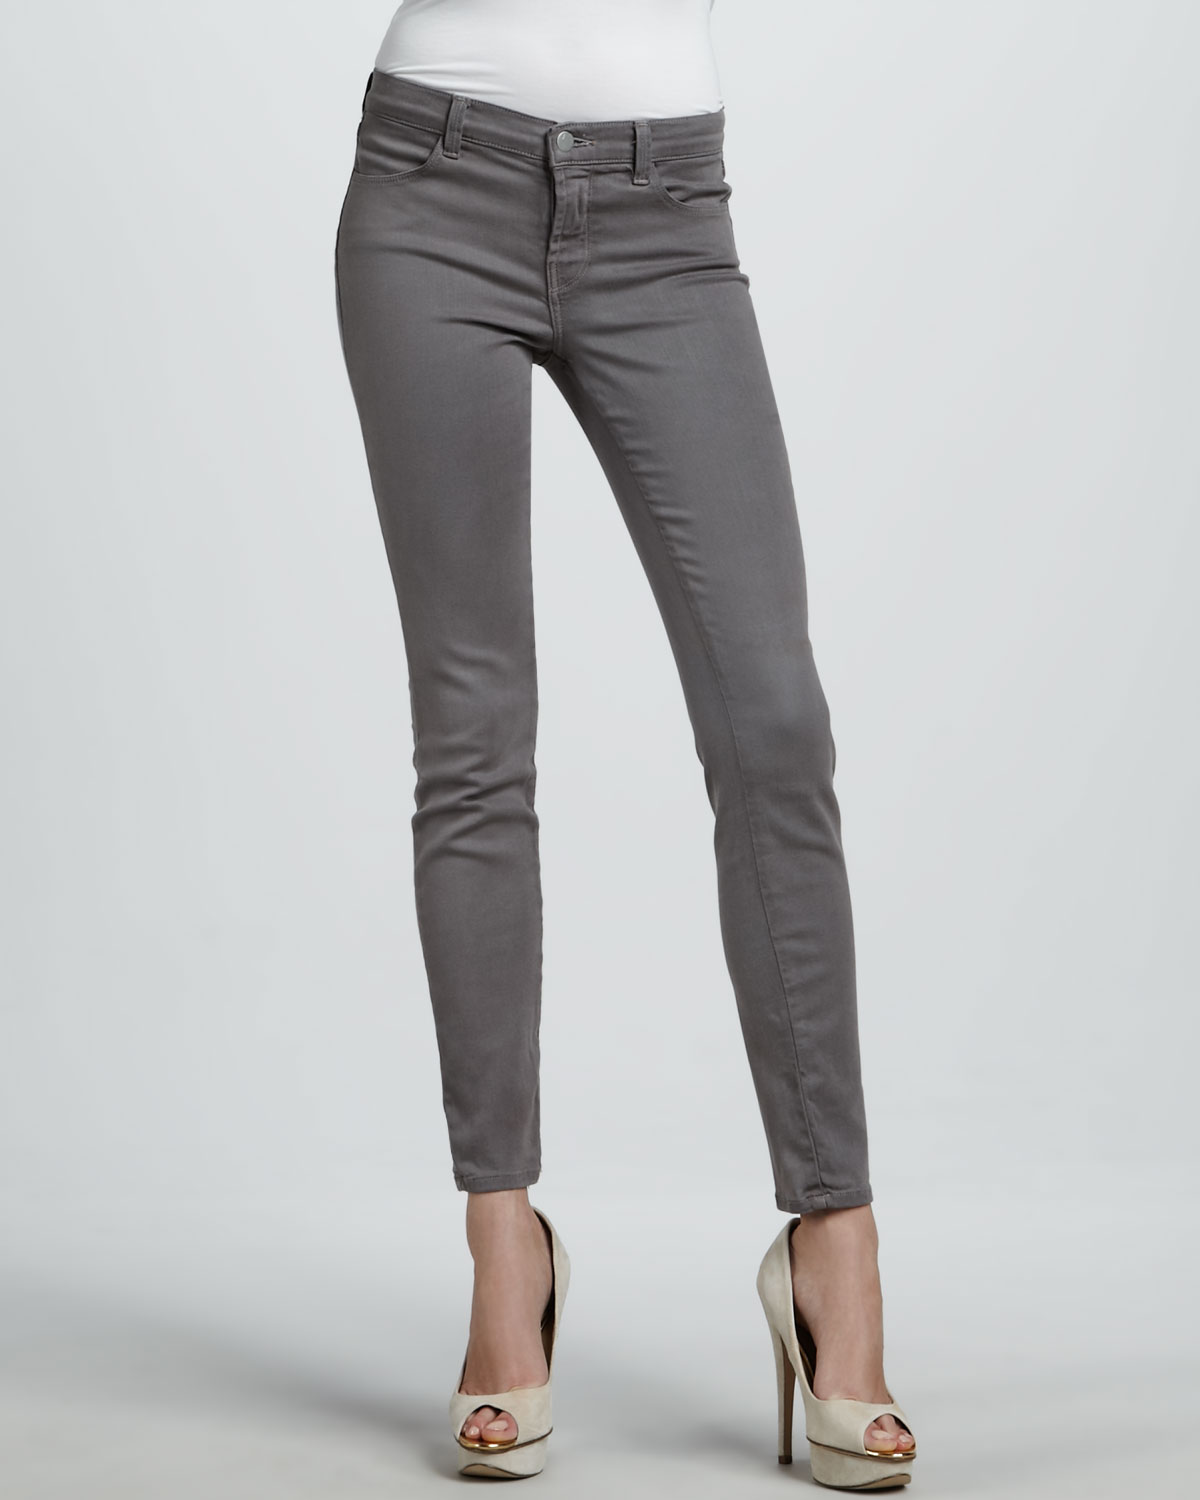 J brand 620 Warm Gray Midrise Super Skinny Jeans in Gray | Lyst